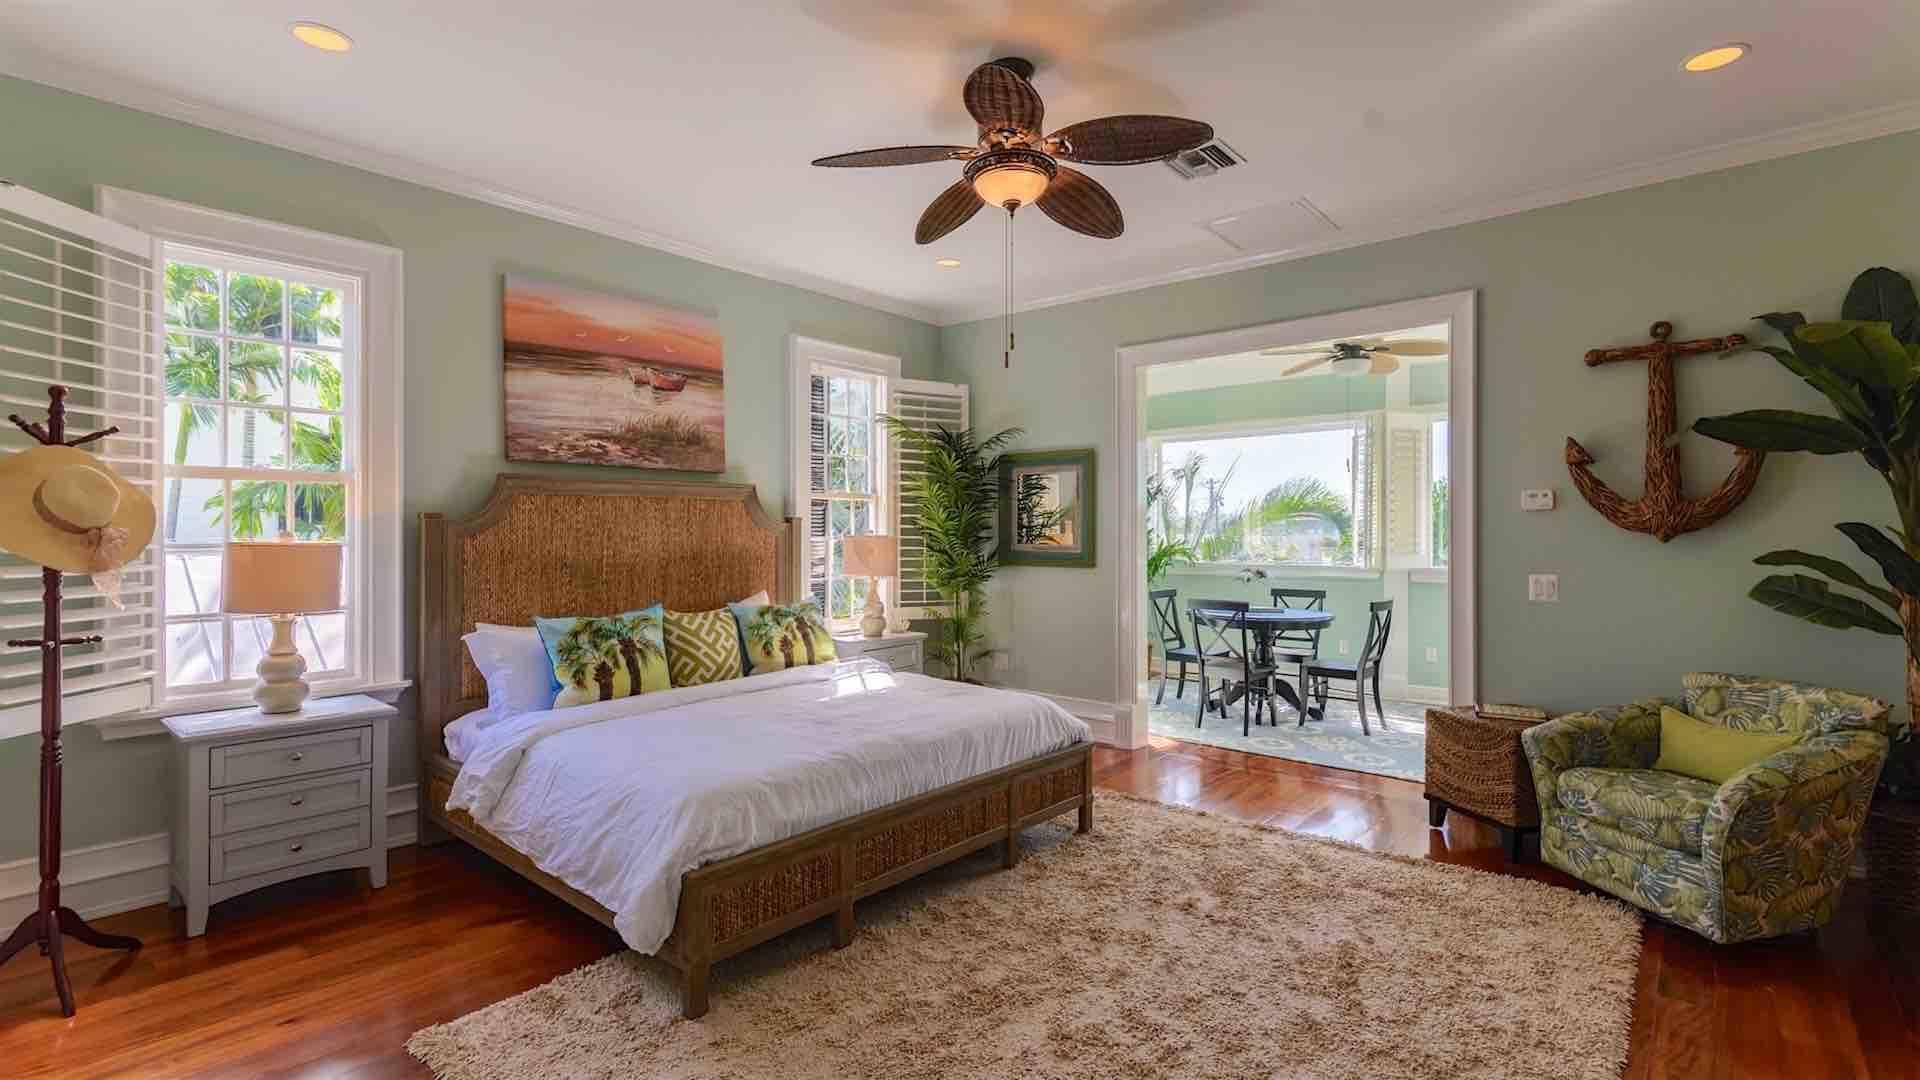 The master bedroom is enormous, with king bed, walk-in closet and sitting area...